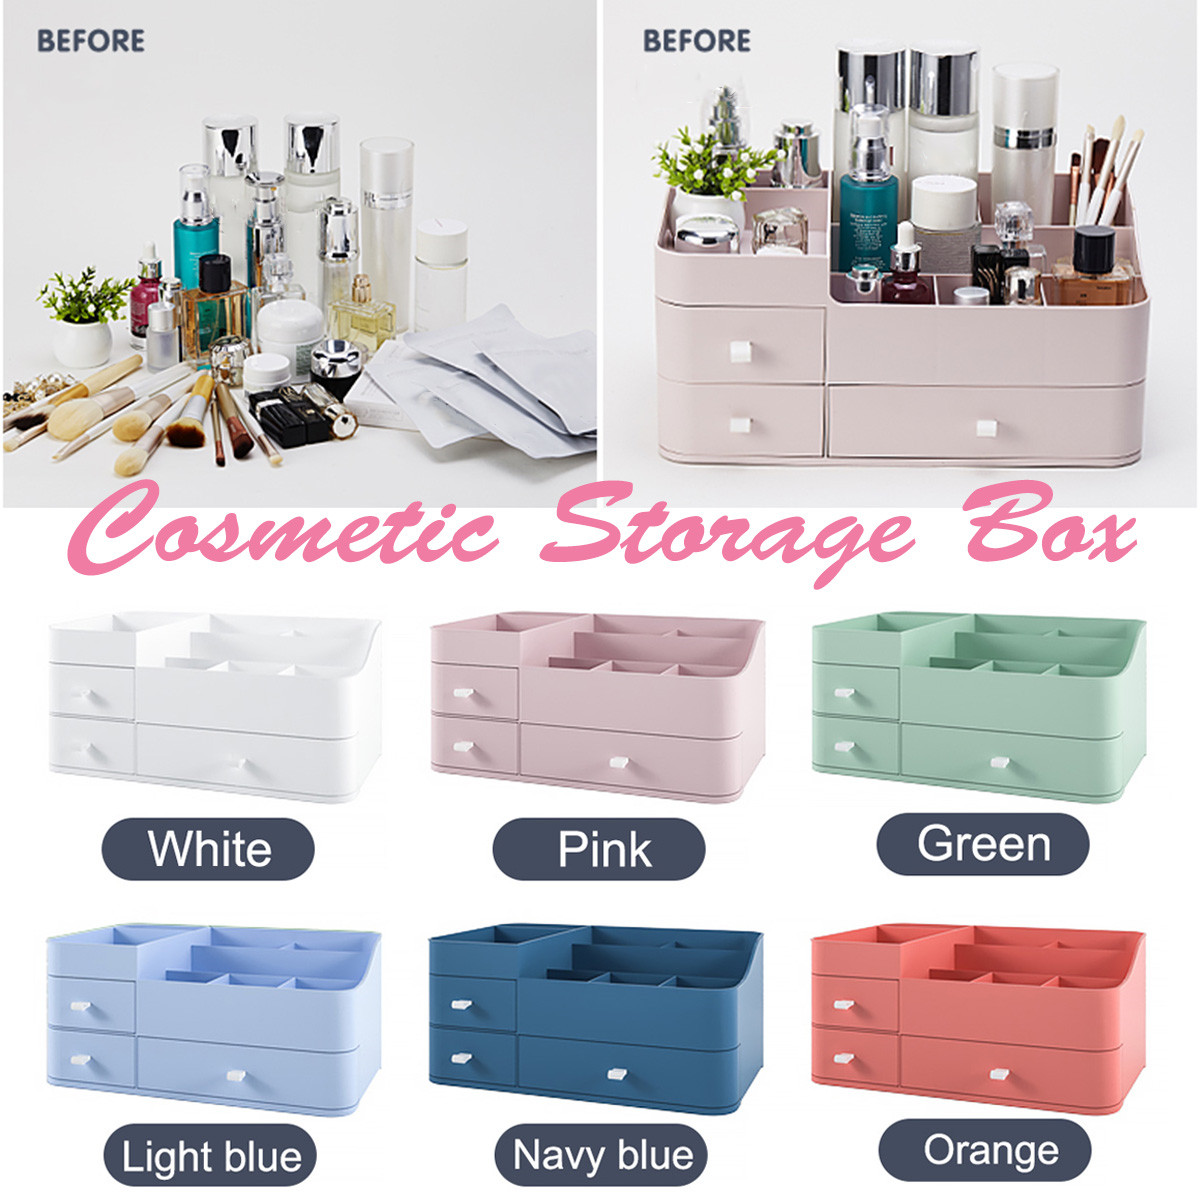 Plastic Makeup Organizer Osmetics Storage Container Lipstick Holder Jewelry Organize Sundries Case Home Makeup Storage Box Women